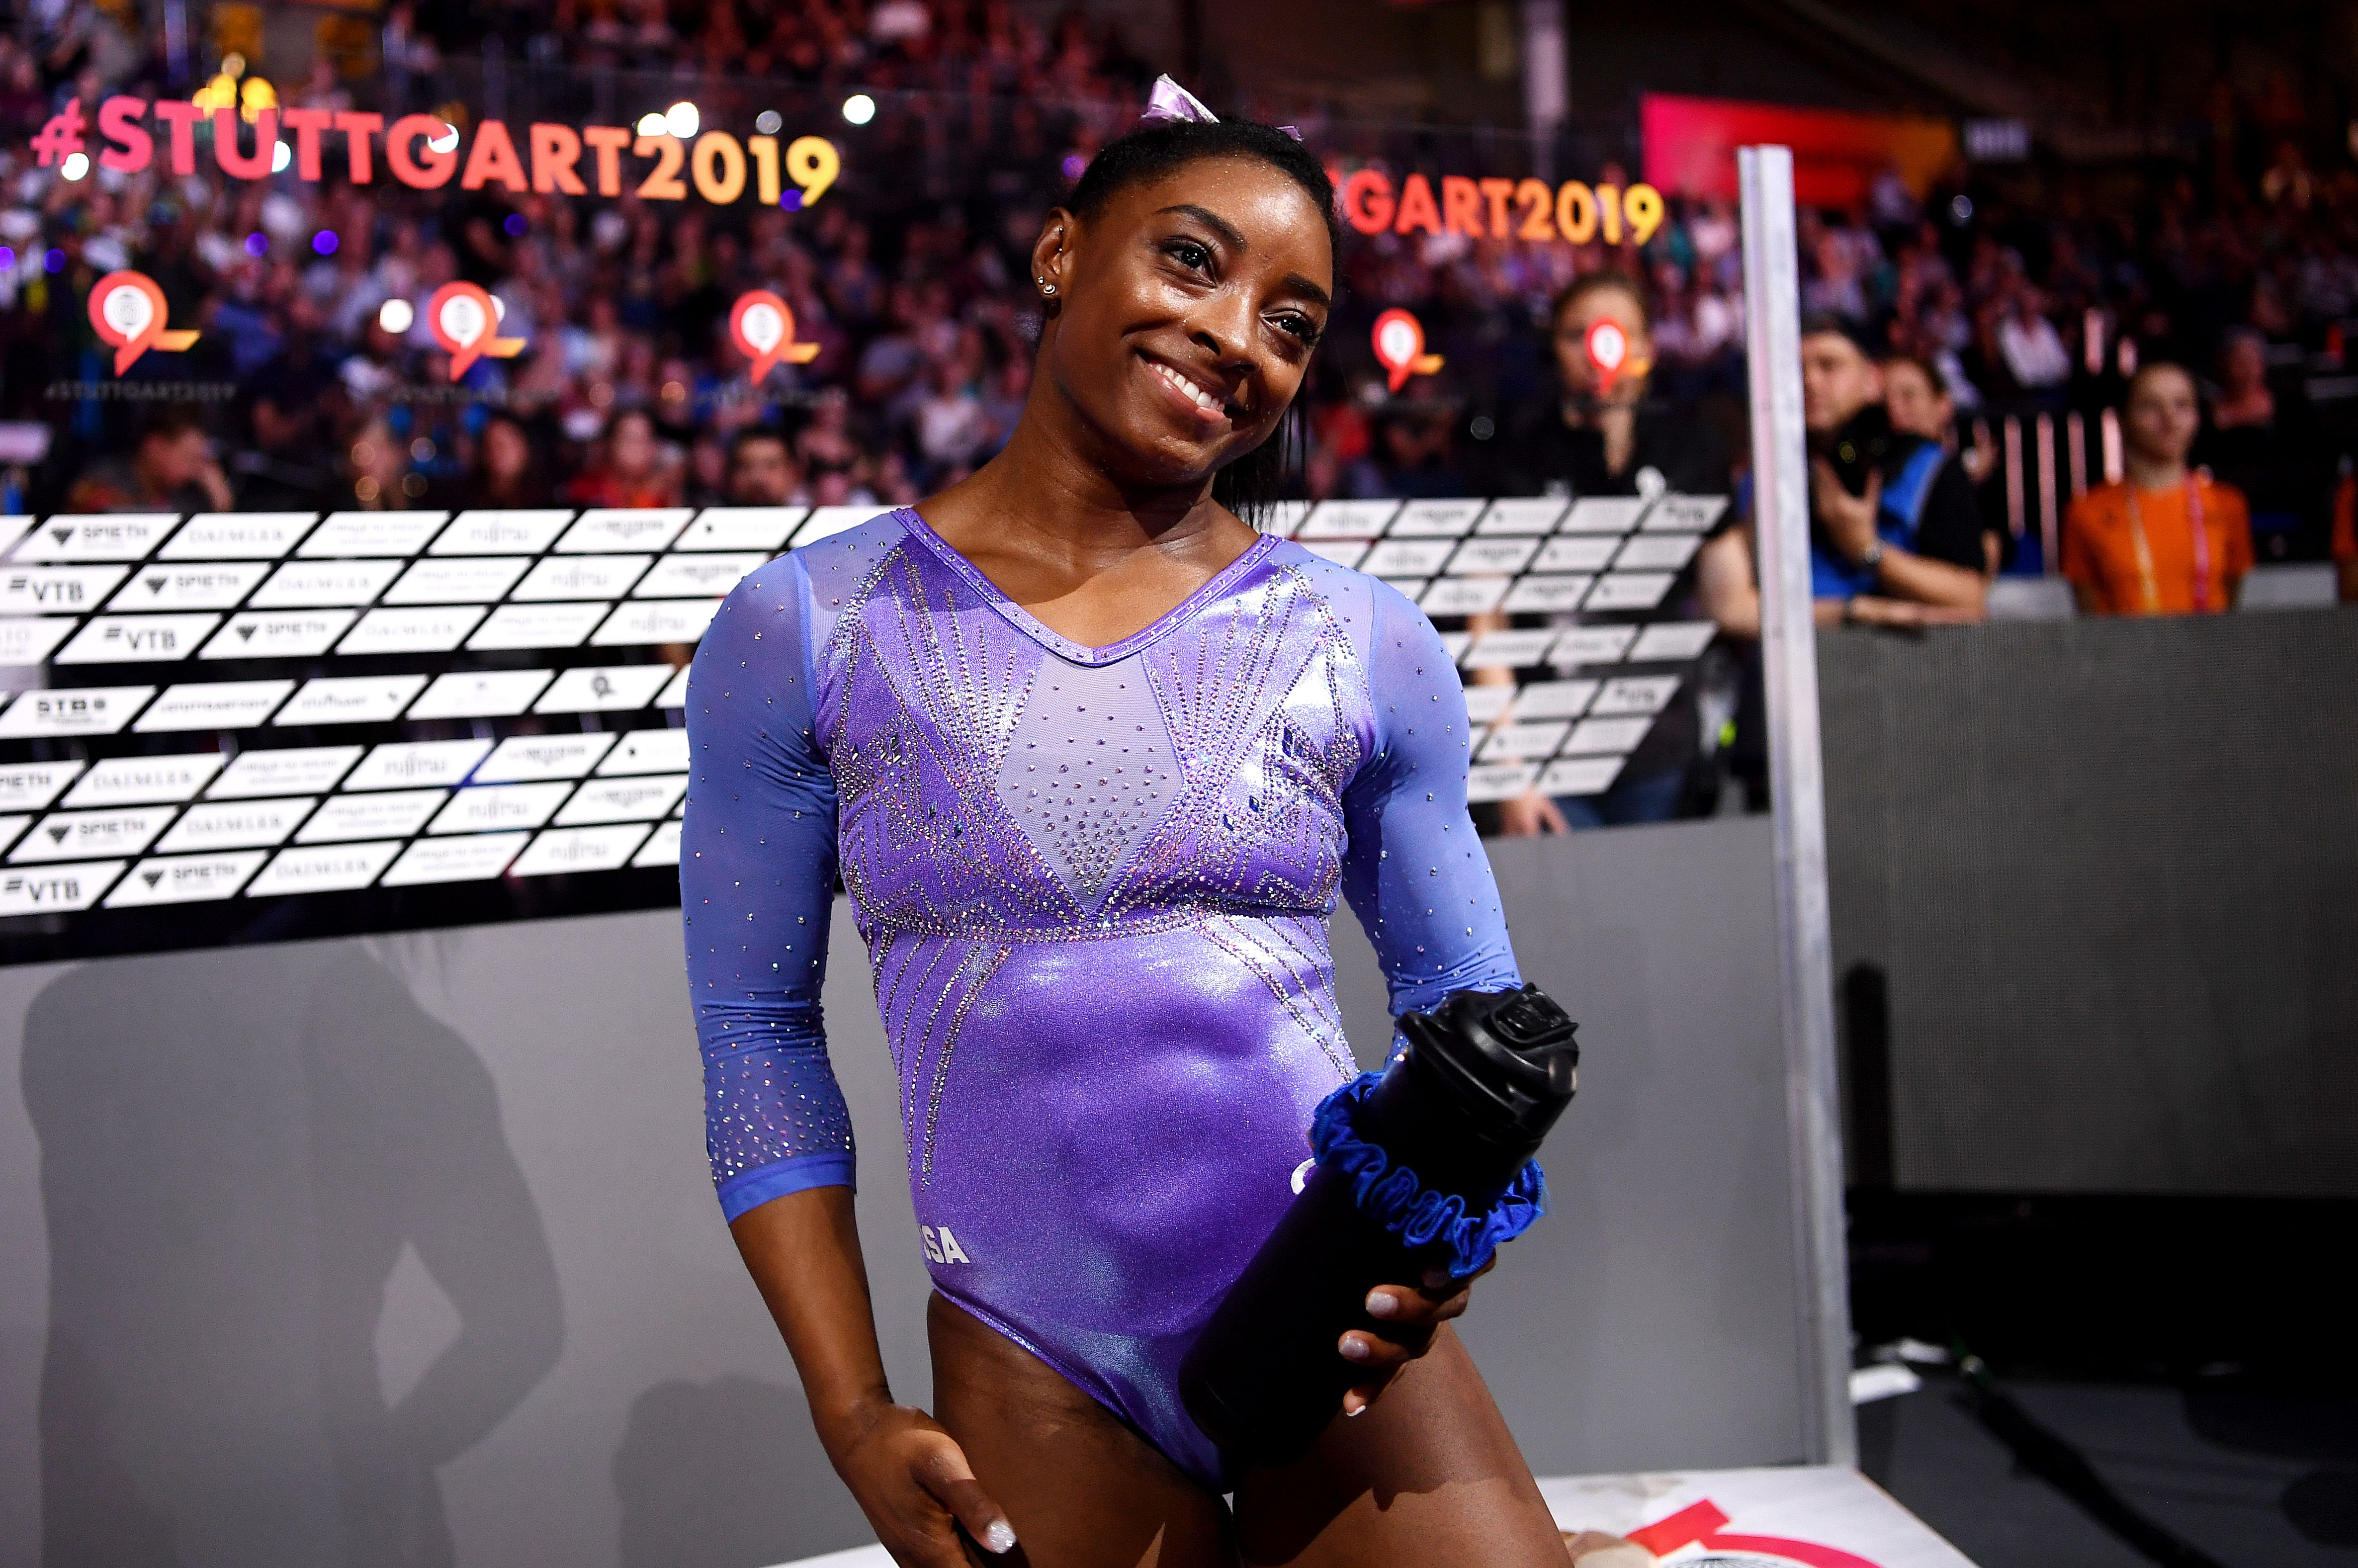 Simone Biles at the 49th FIG Artistic Gymnastics World Championships at Hanns-Martin-Schleyer-Halle on October 13, 2019 in Stuttgart, Germany. | Source: Getty Images